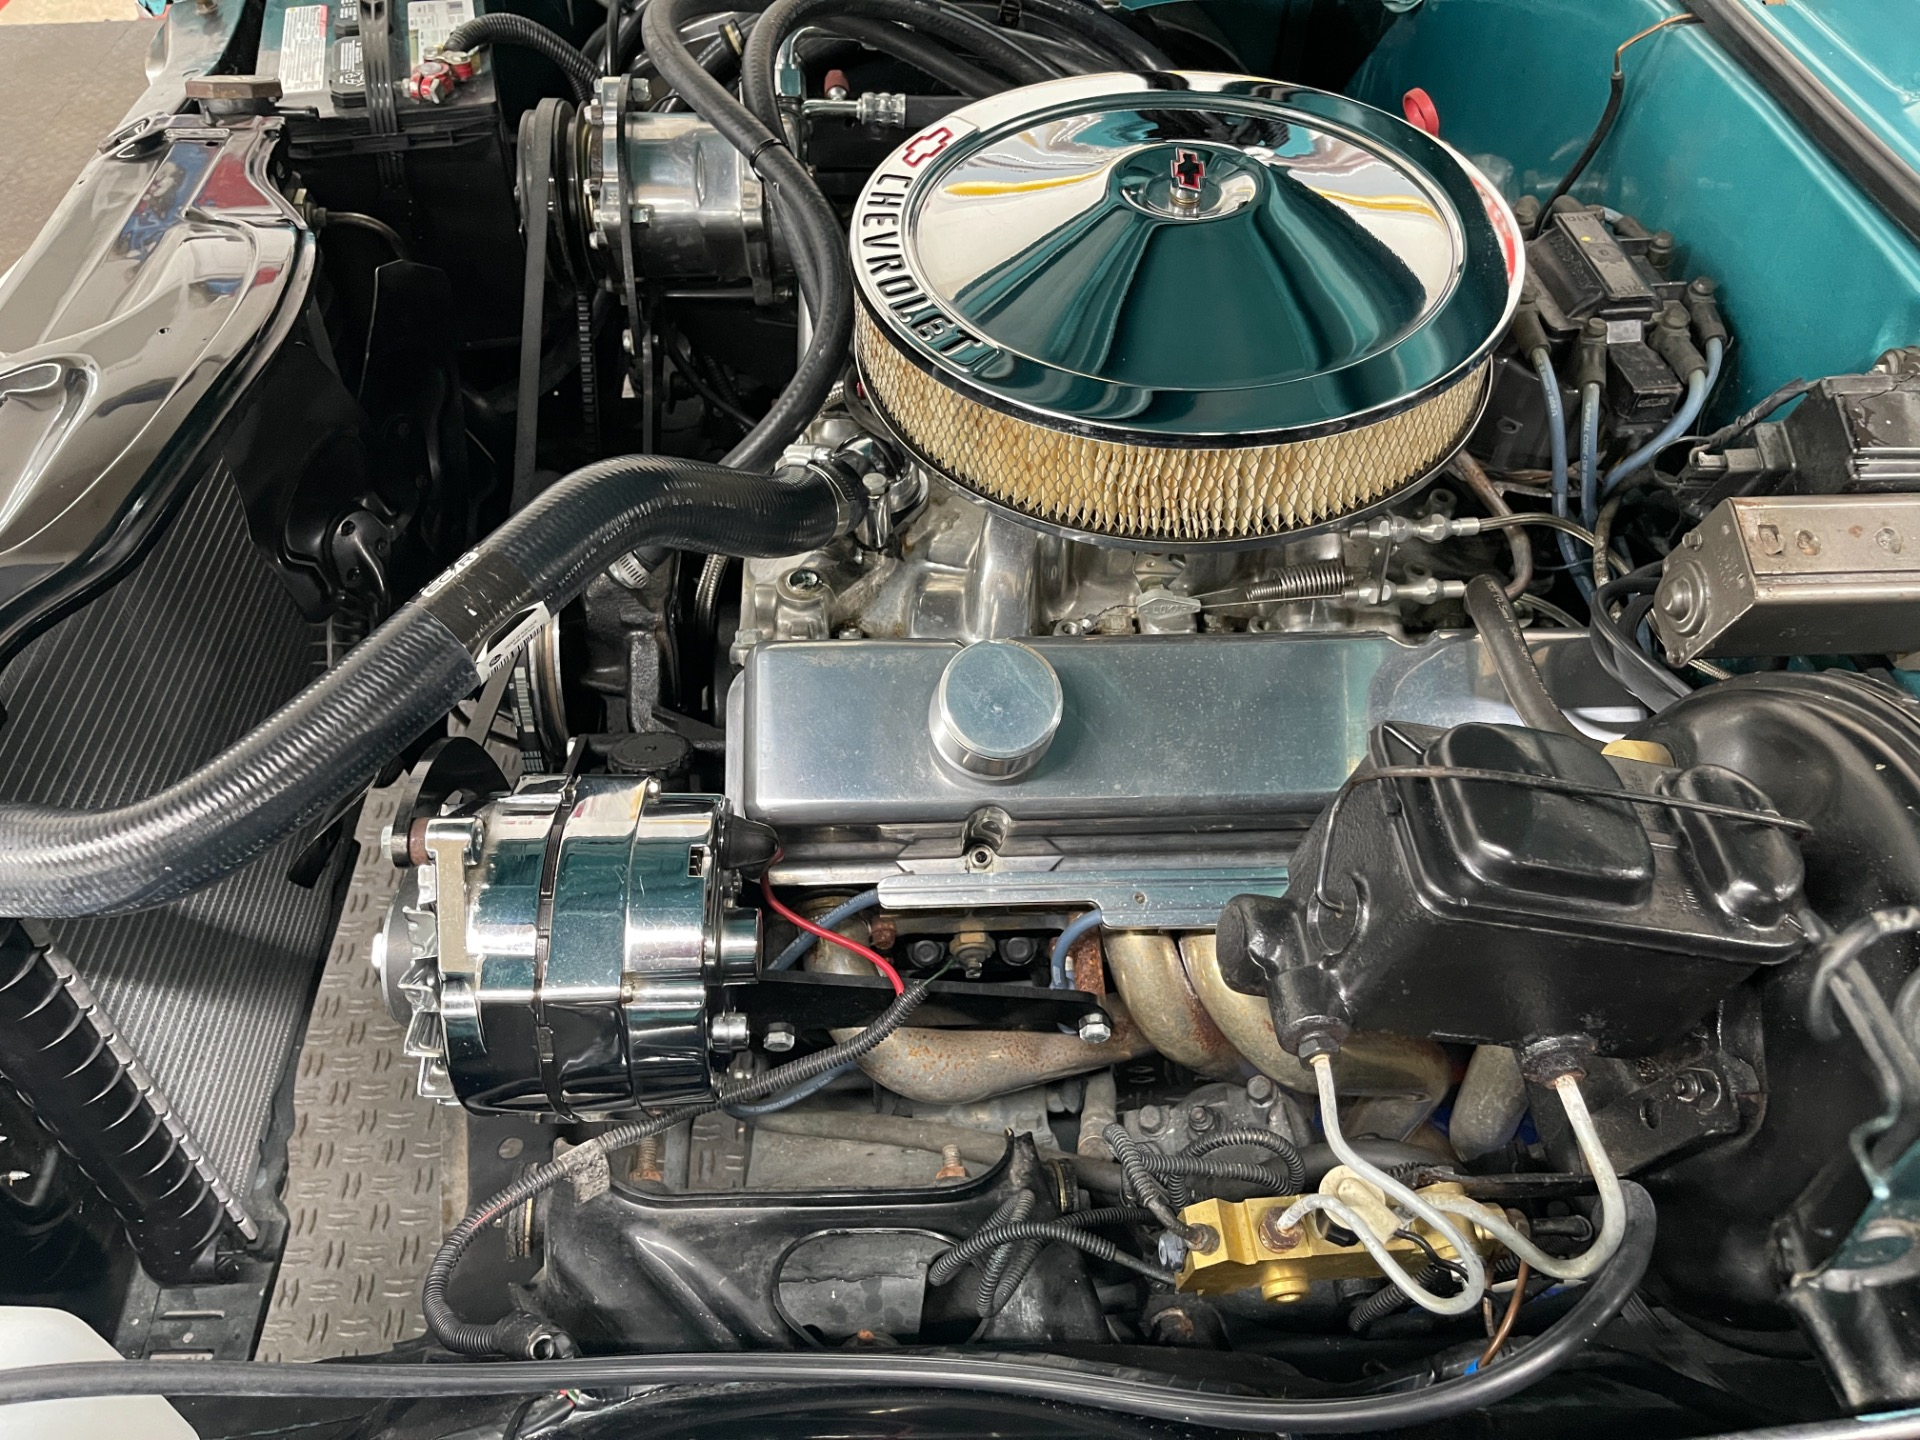 Used 1969 Chevrolet Nova - EXCELLENT DRIVING CLASSIC - 350 V8 ENGINE - SEE VIDEO   Mundelein, IL